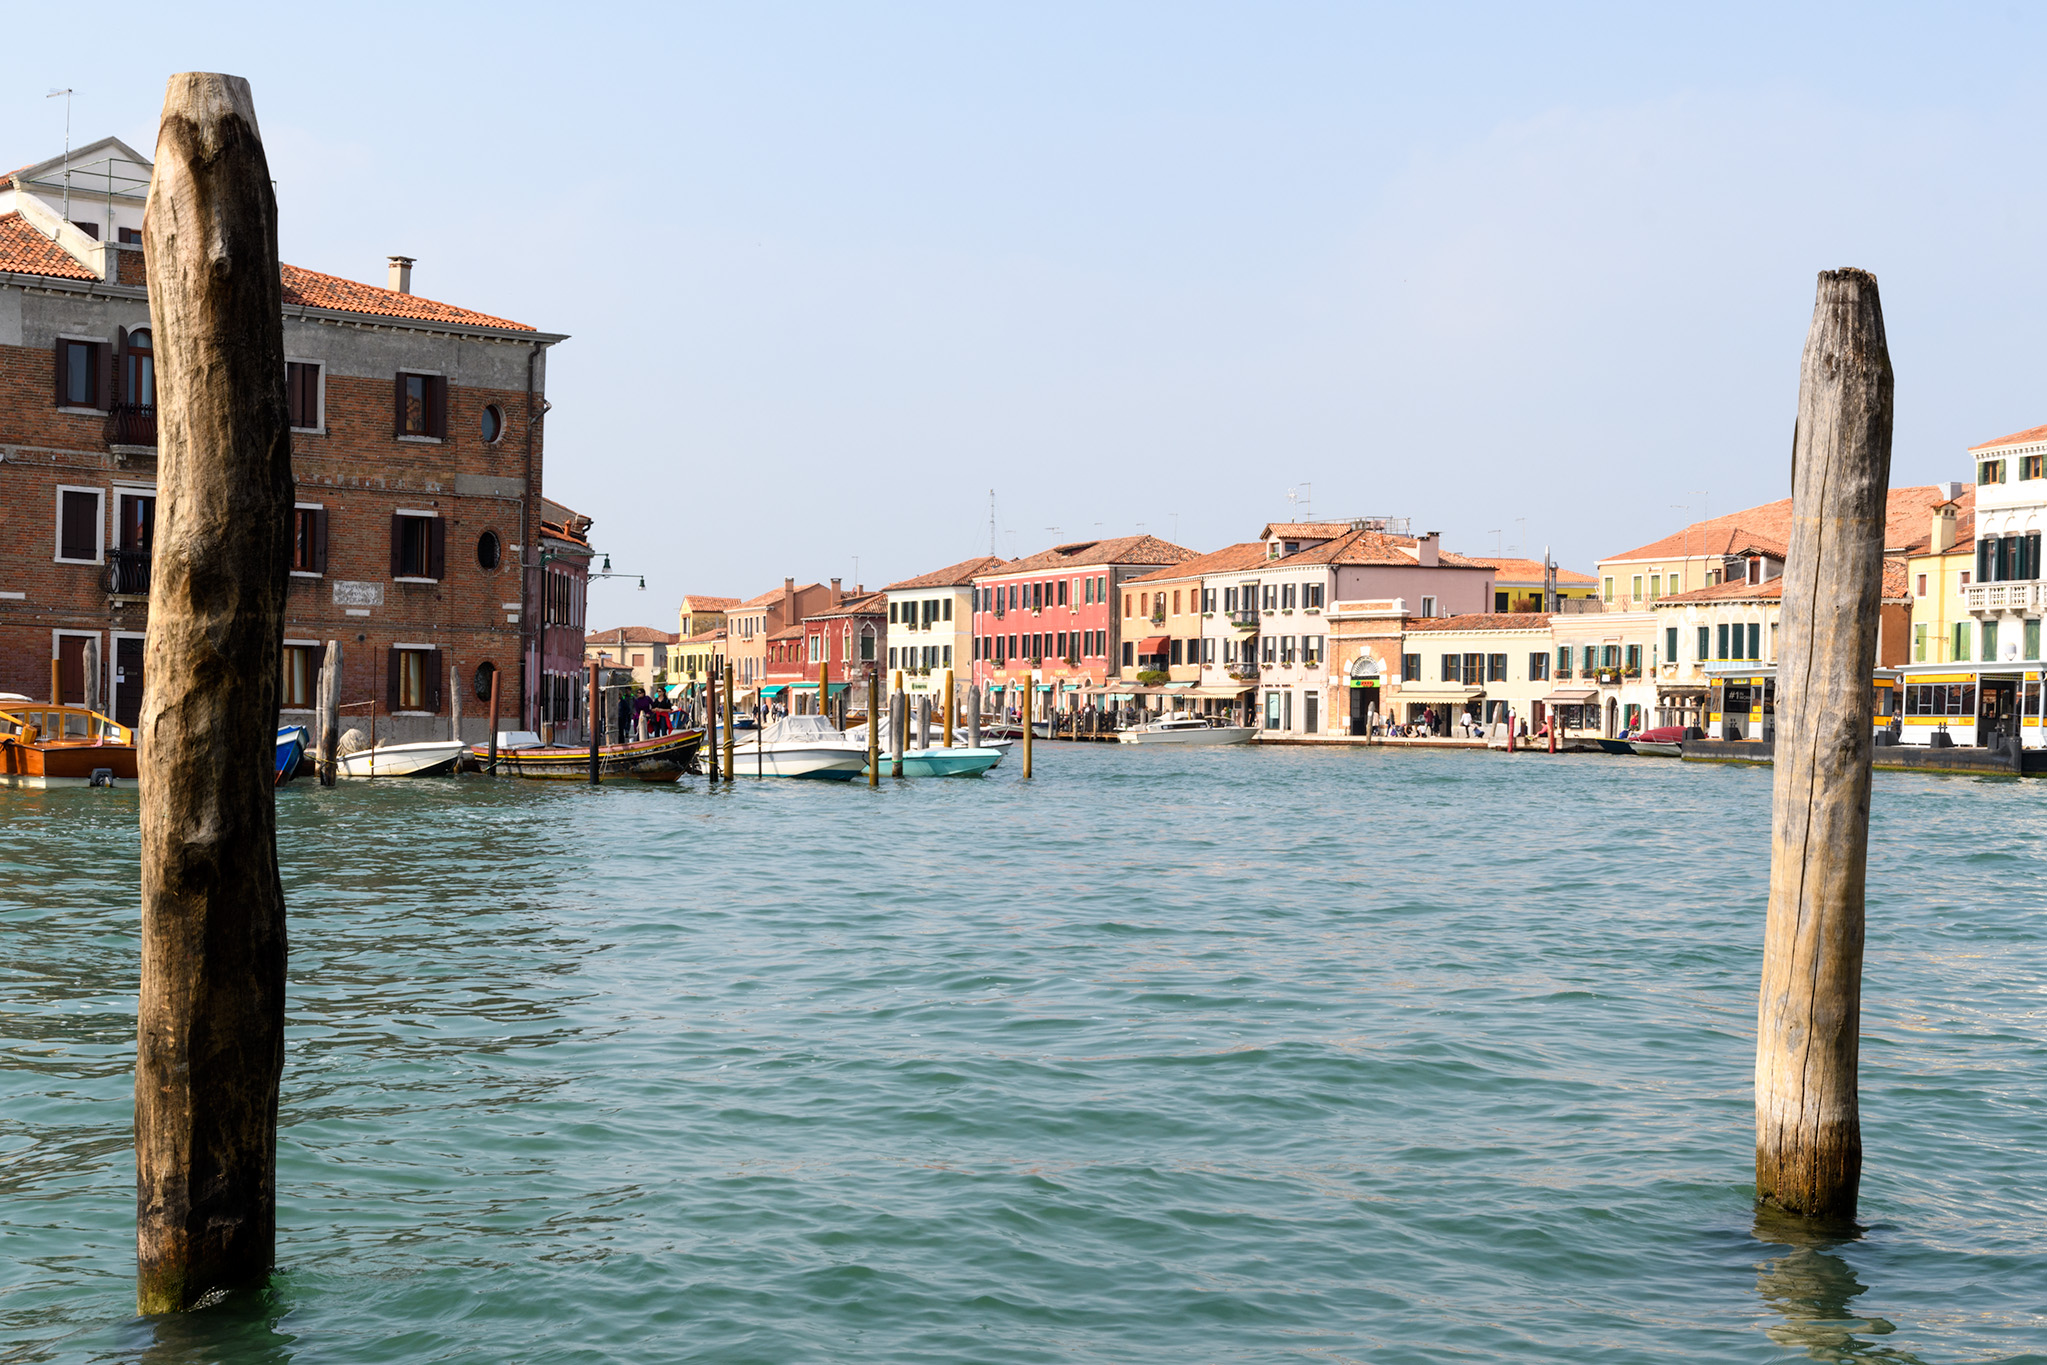 Palazzo along the canal in Murano